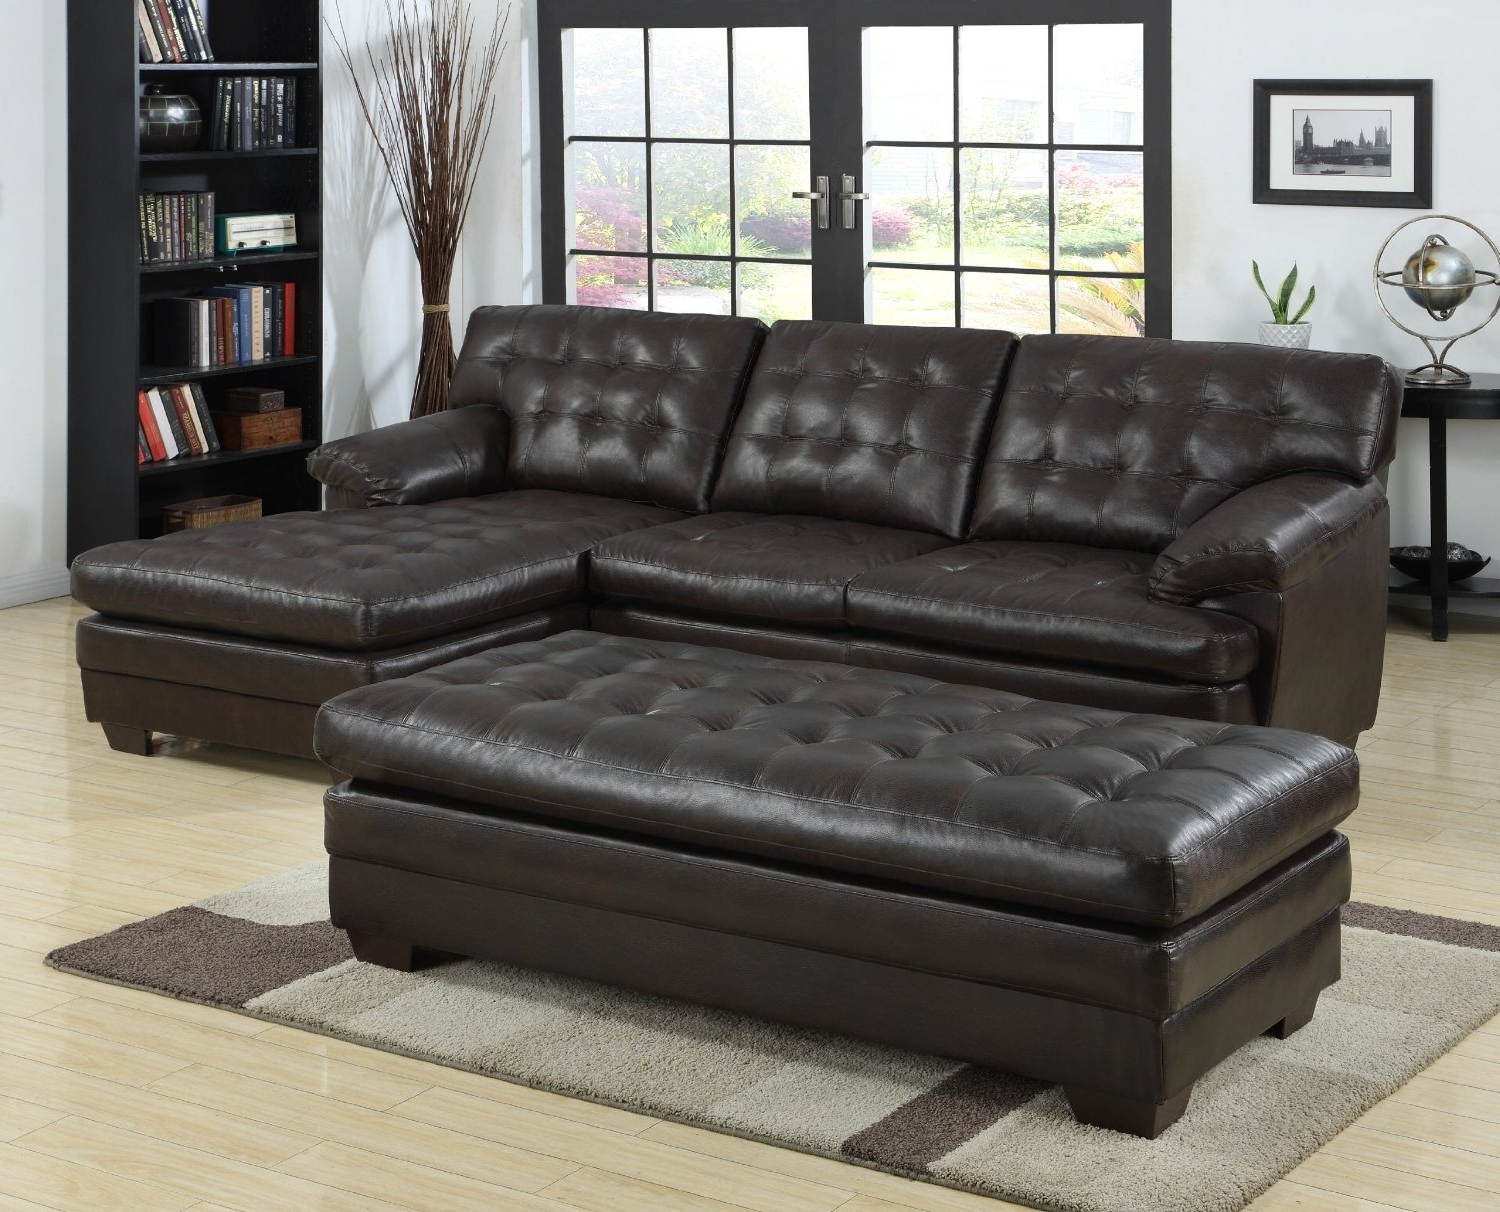 Black Tufted Leather Sectional Sofa With Chaise And Bench Seat Regarding Recent Sofas With Chaise And Ottoman (View 12 of 15)